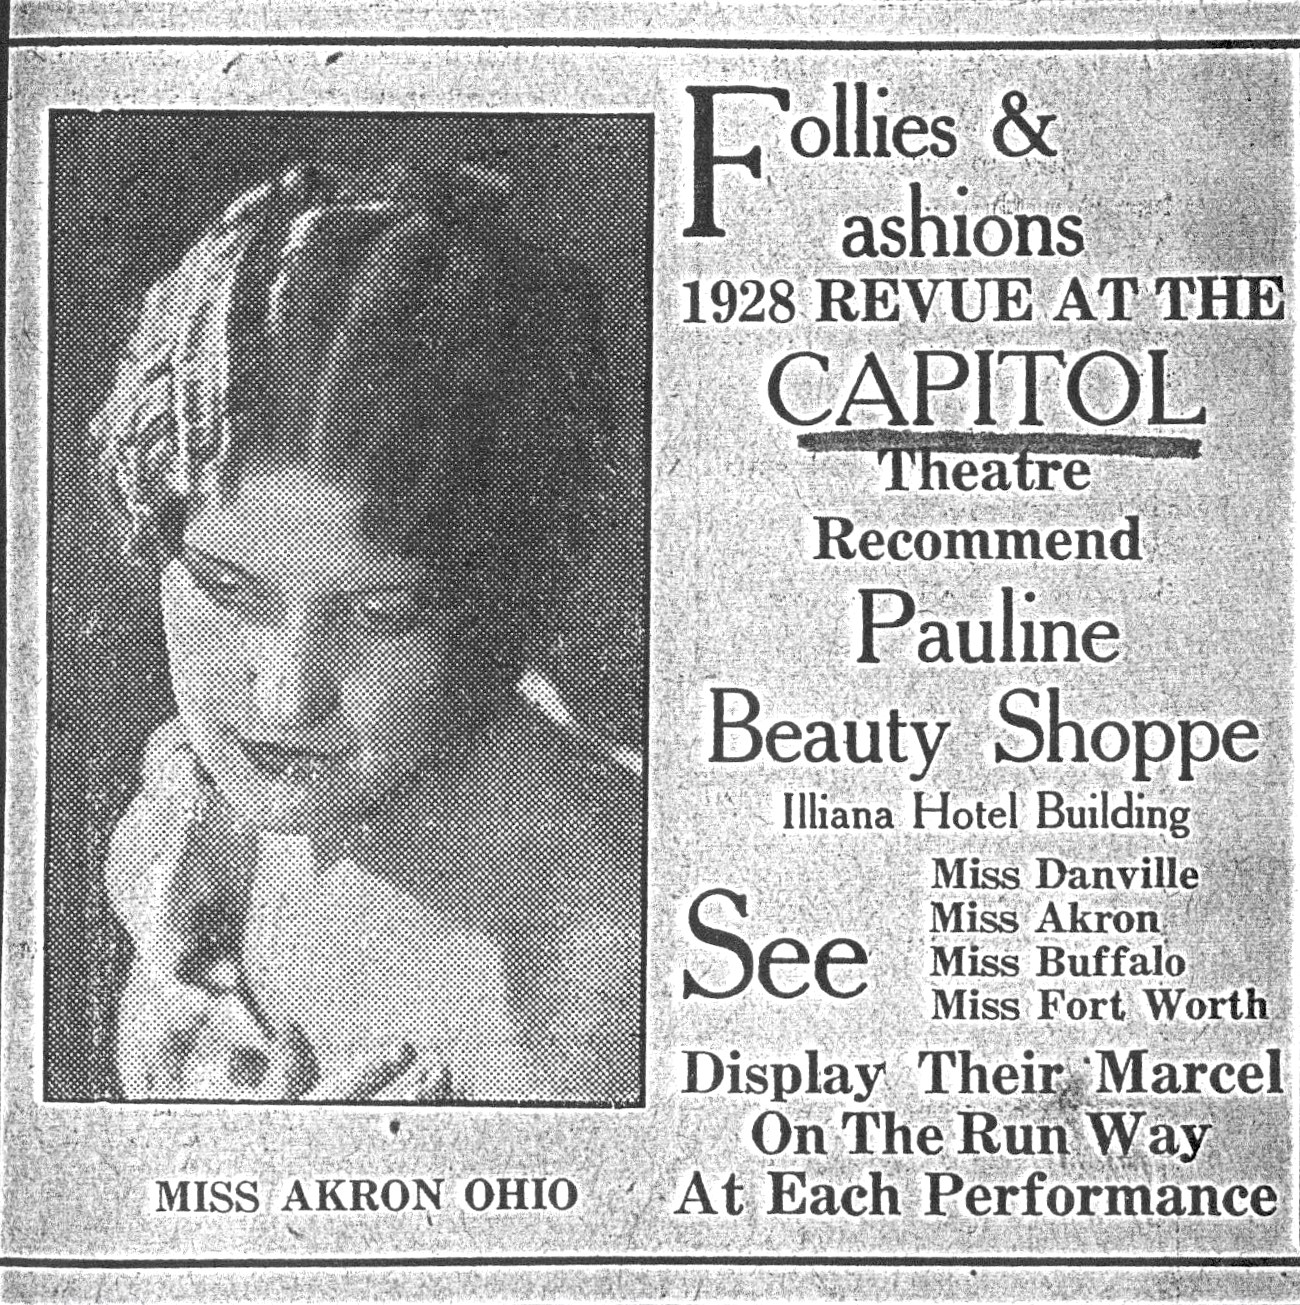 capitols follies ad.jpg